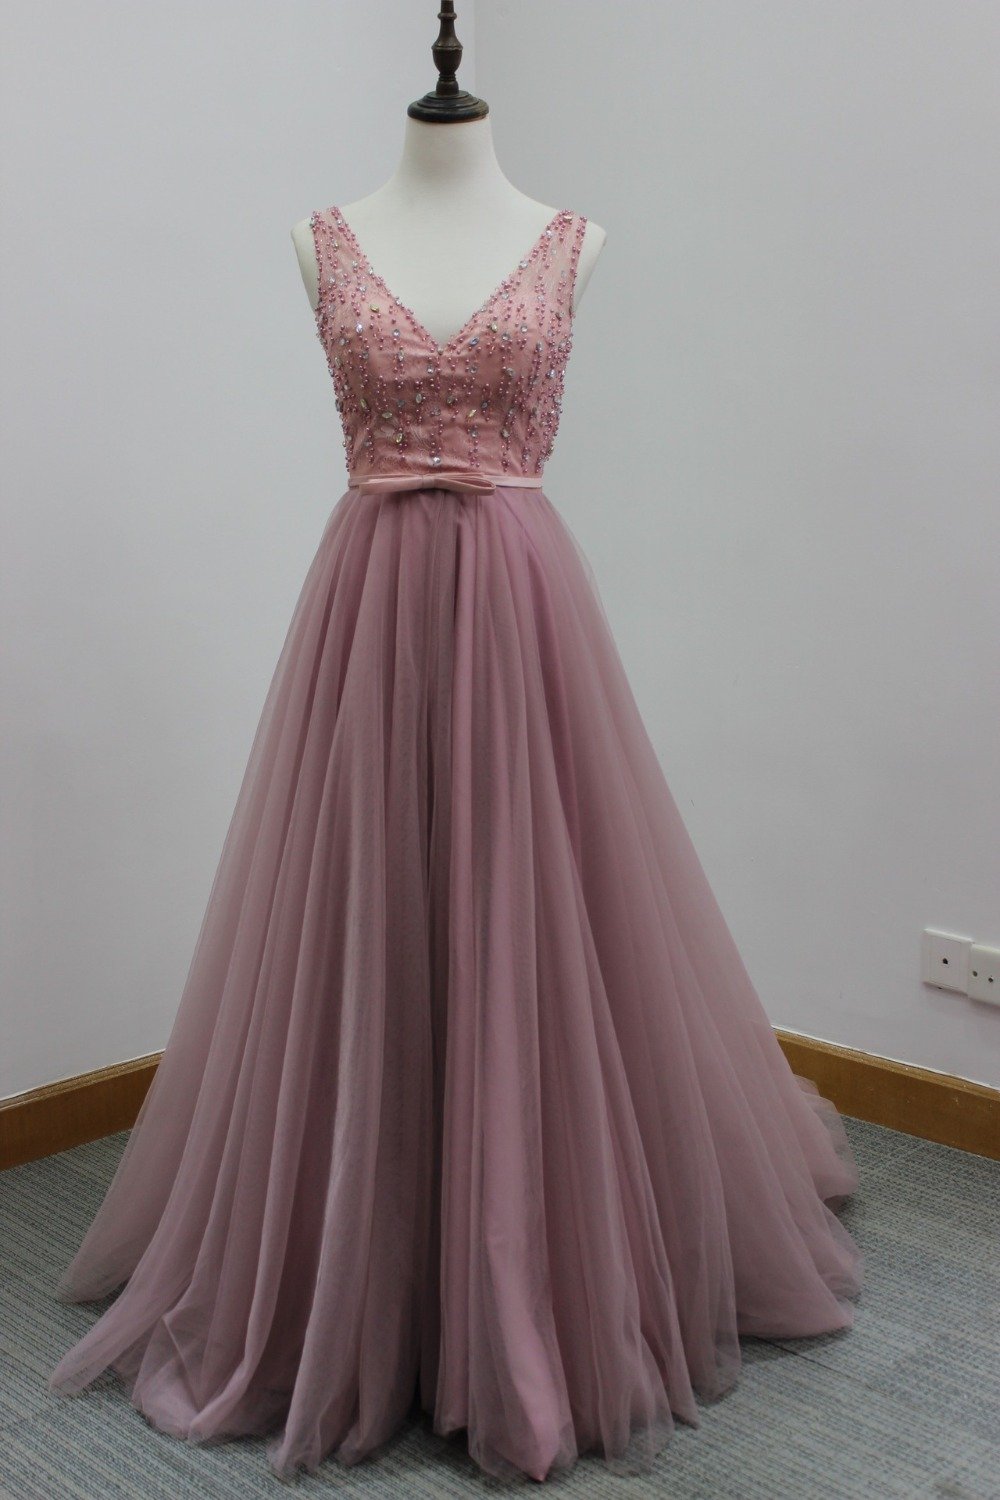 Popular dusty rose dress buy cheap dusty rose dress lots for Rose pink wedding dress